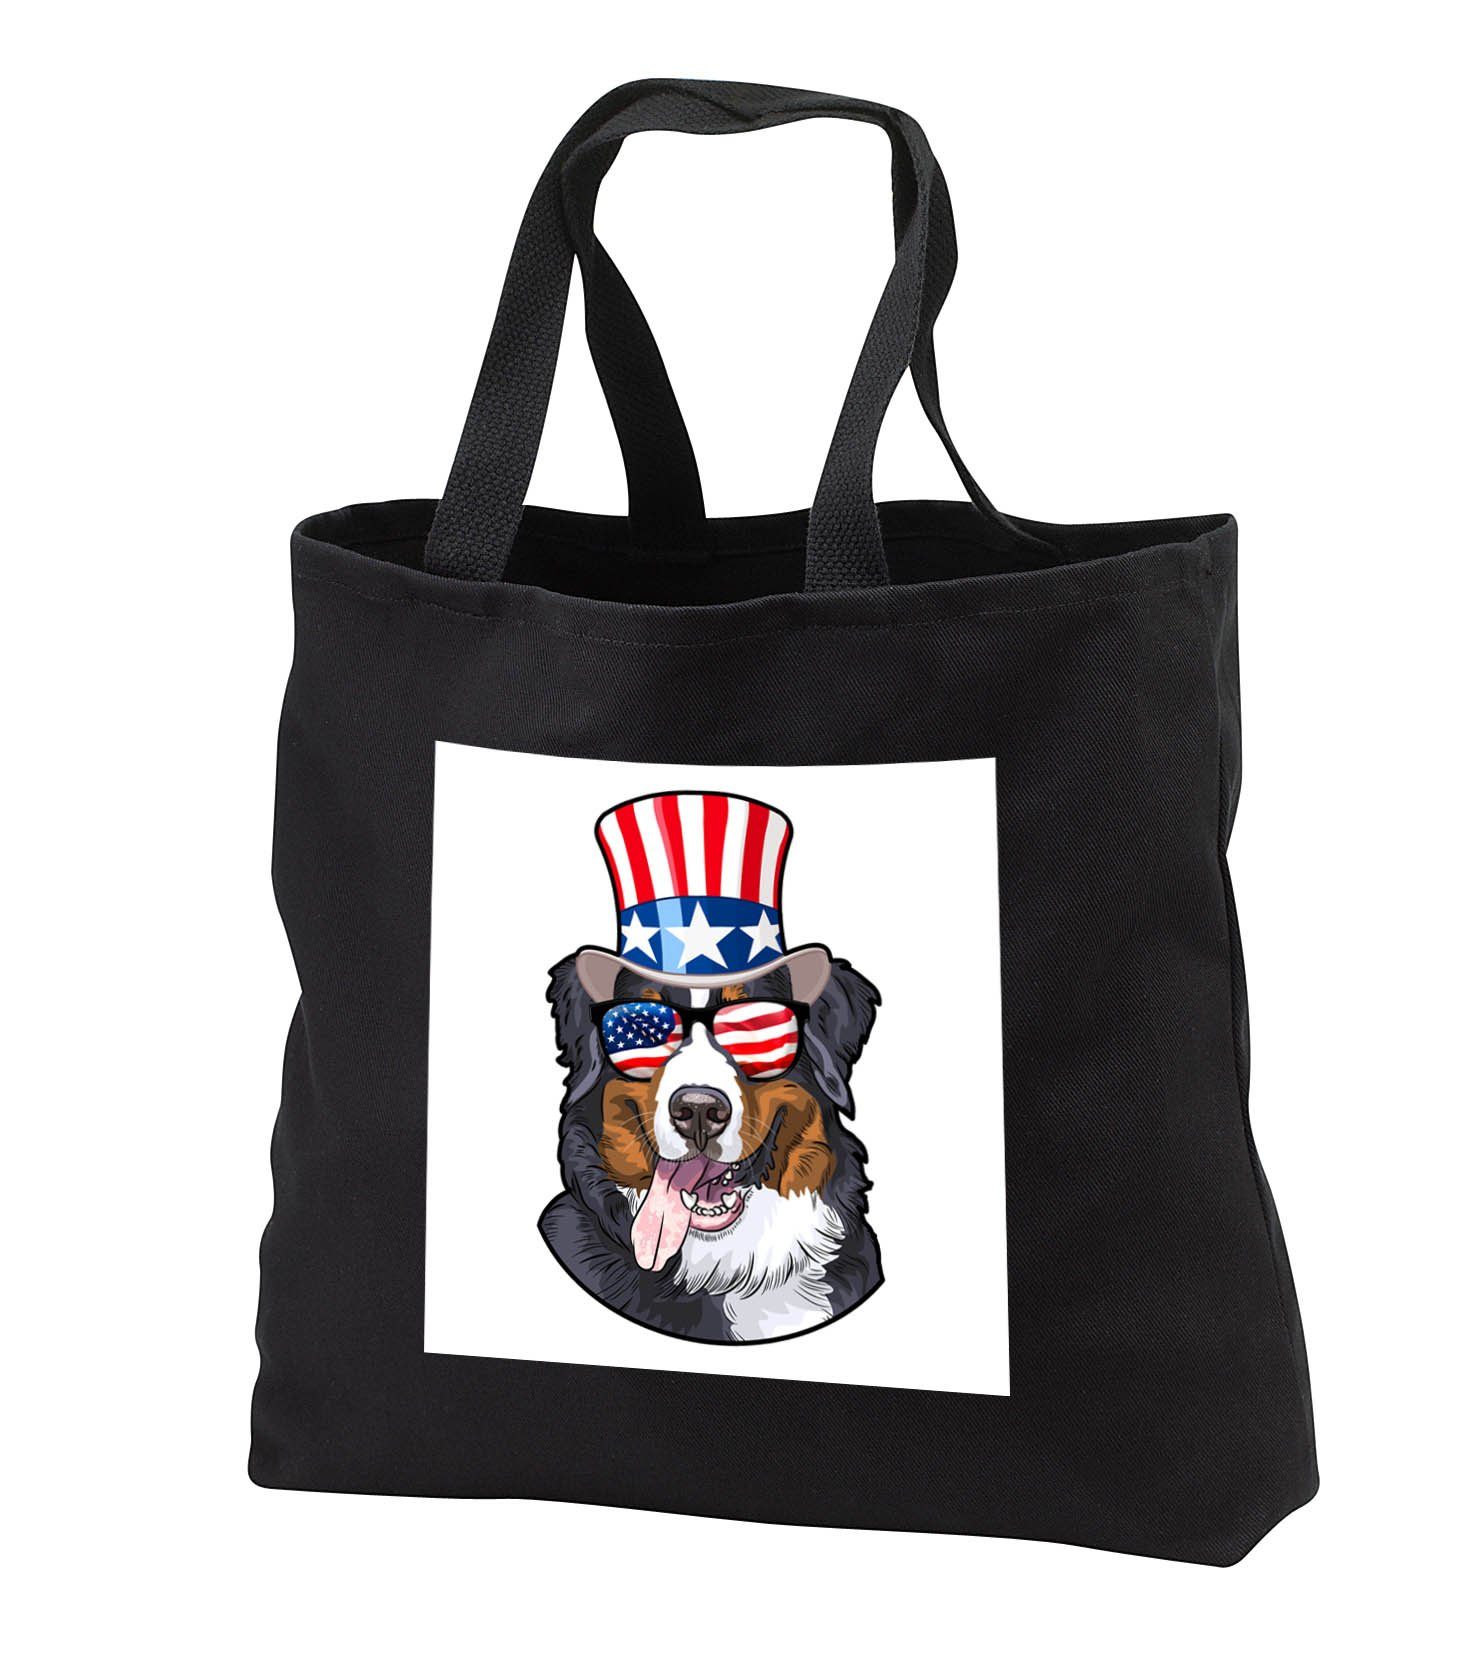 Patriotic American Dogs - Burmese Mountain Dog With American Flag Sunglasses and Top hat - Tote Bags - Black Tote Bag 14w x 14h x 3d (tb_282711_1)